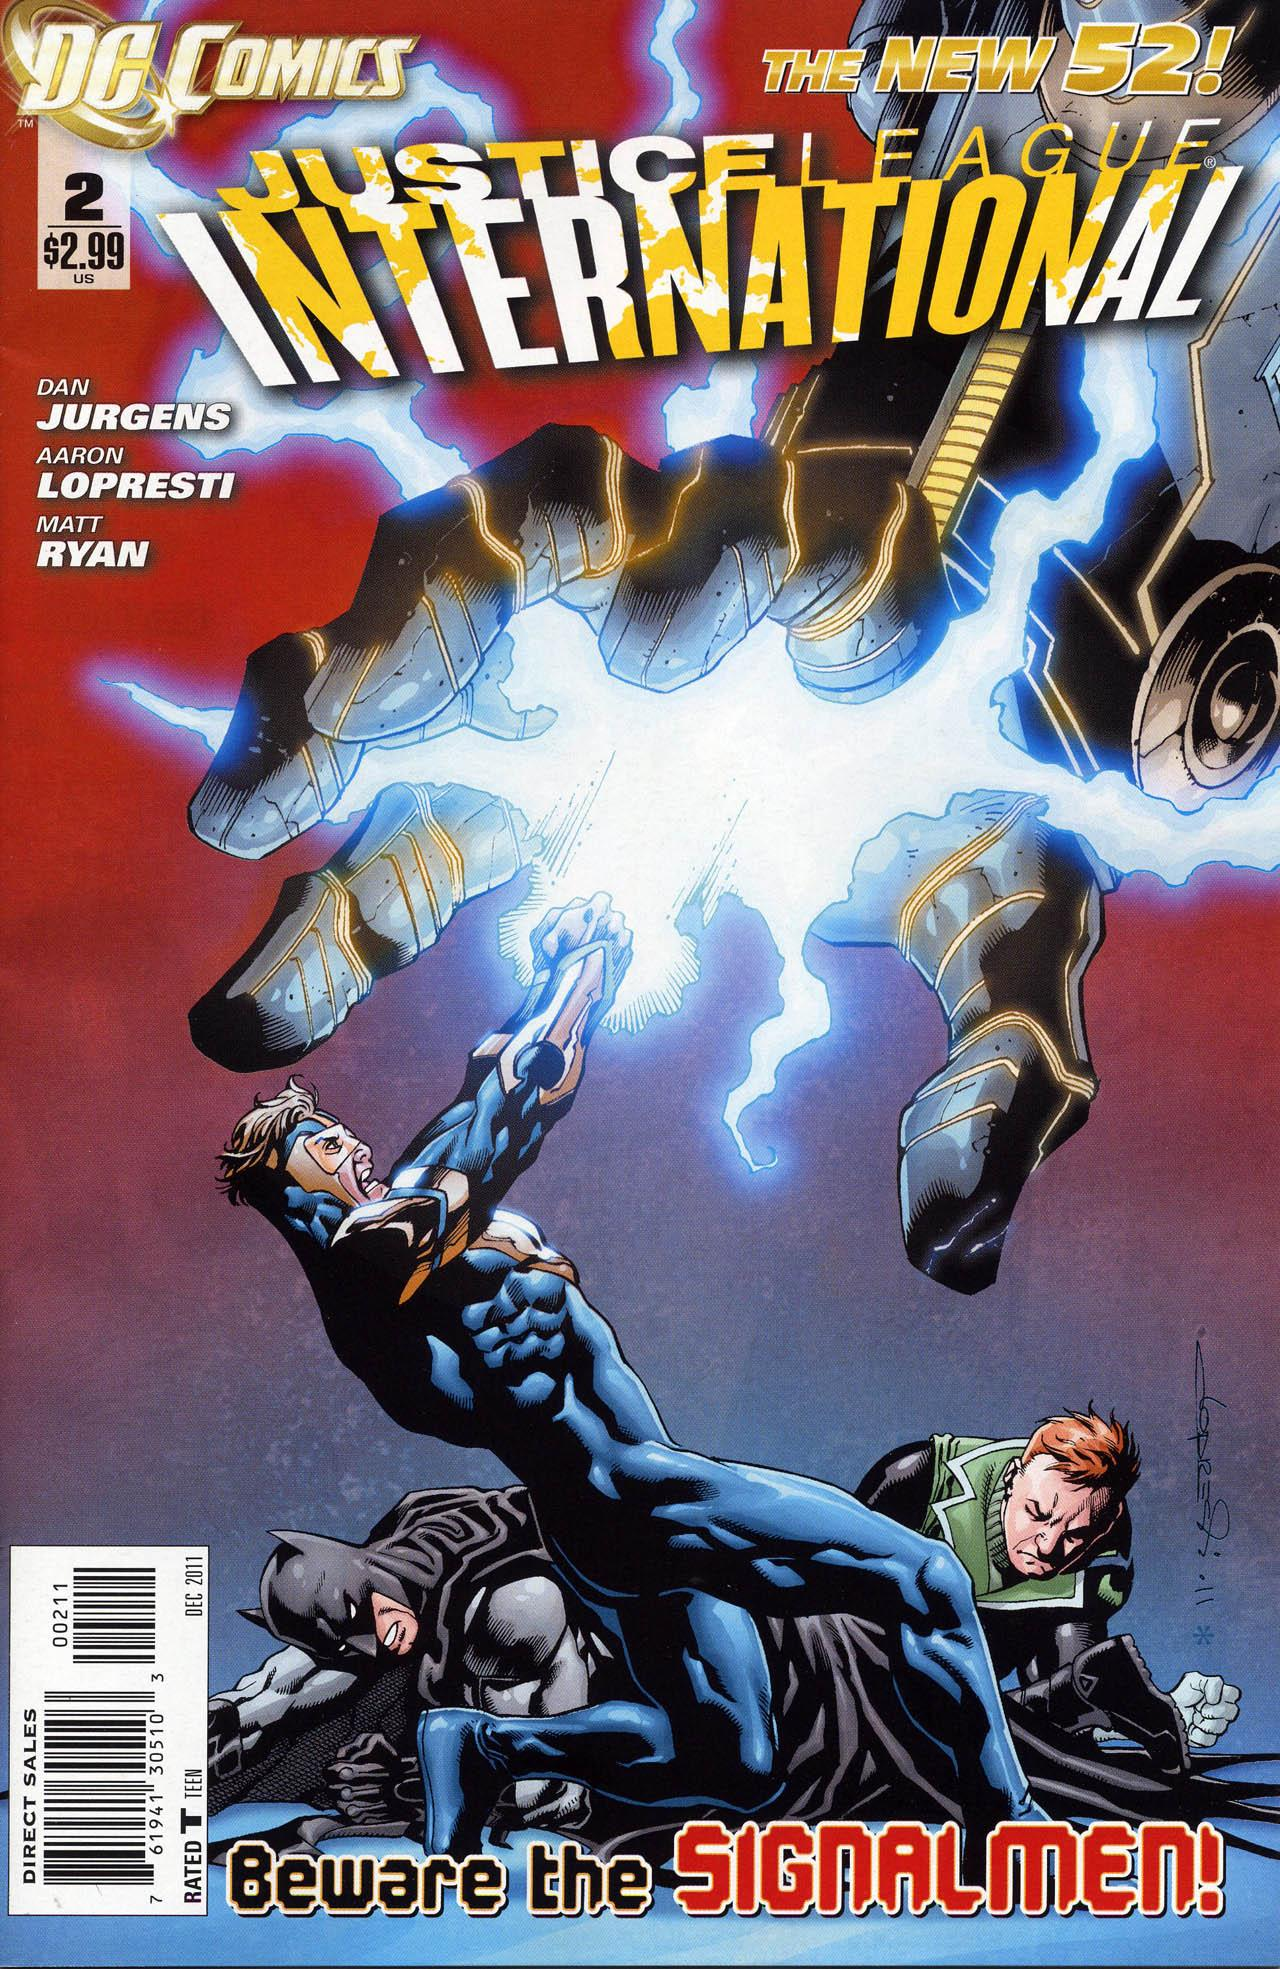 Justice League International #2